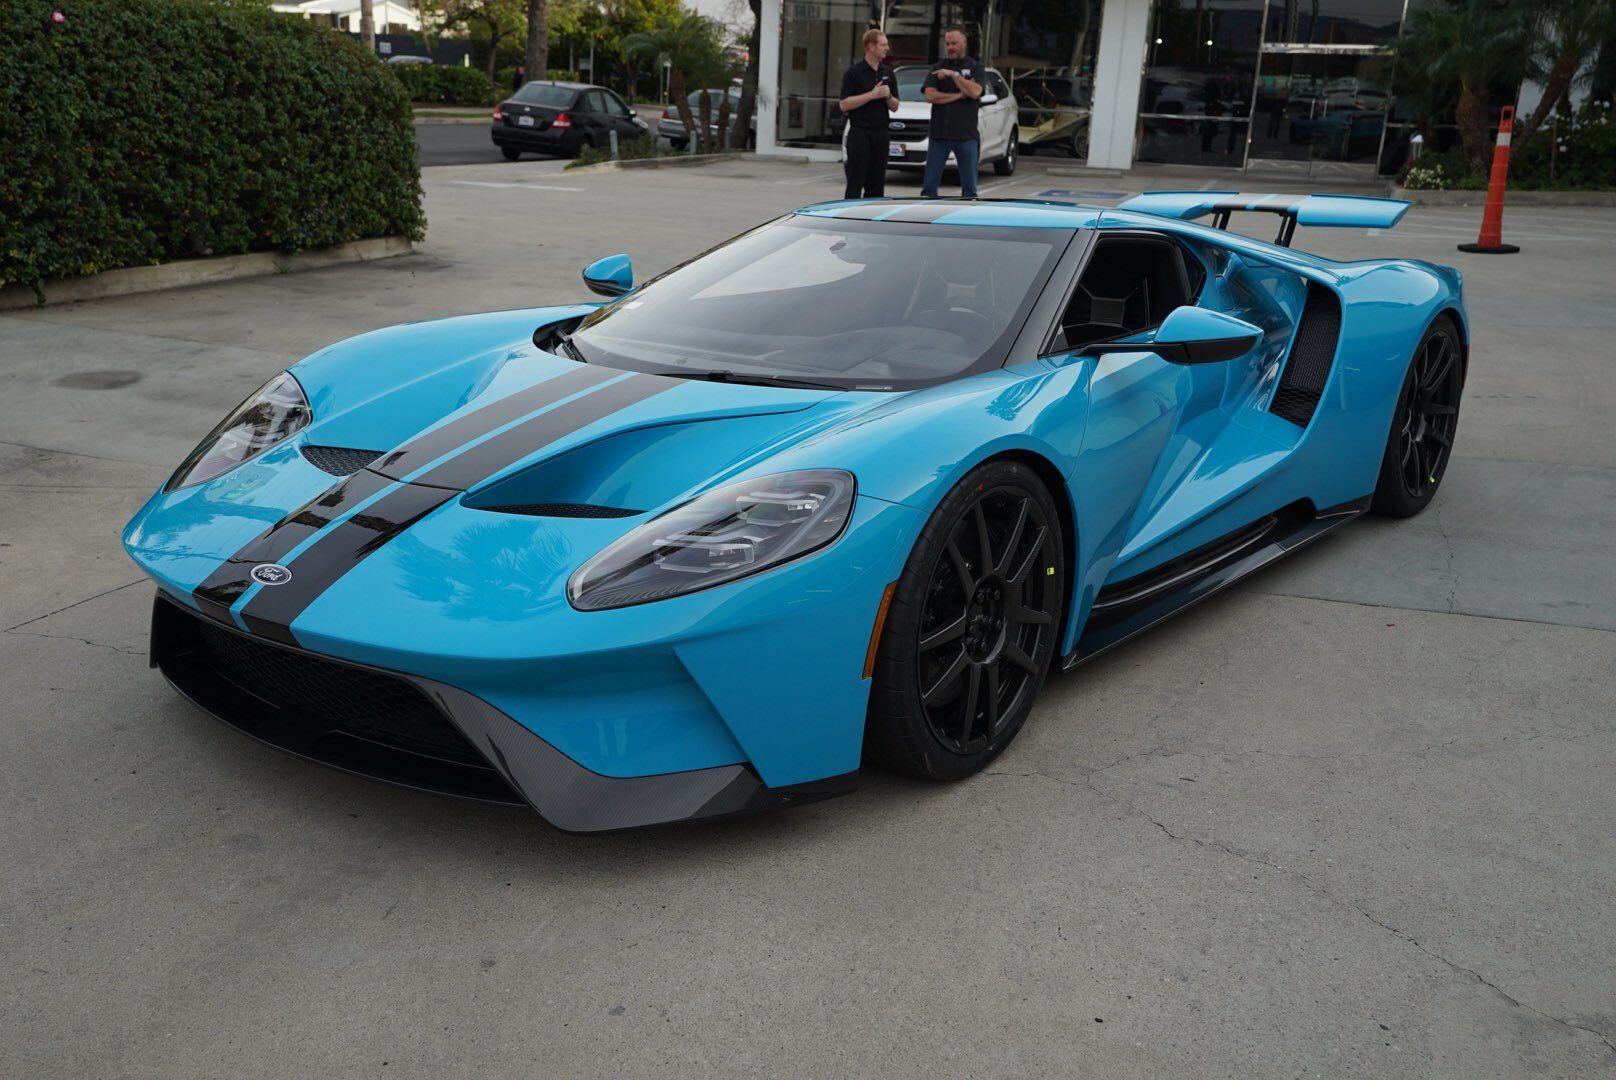 Ford Gt Painted In Porsche Paint To Sample Miami Blue W Black Central Stripes Photo Taken By Jordanmaron On Instagram Owned By Jordanmaron On Instagram